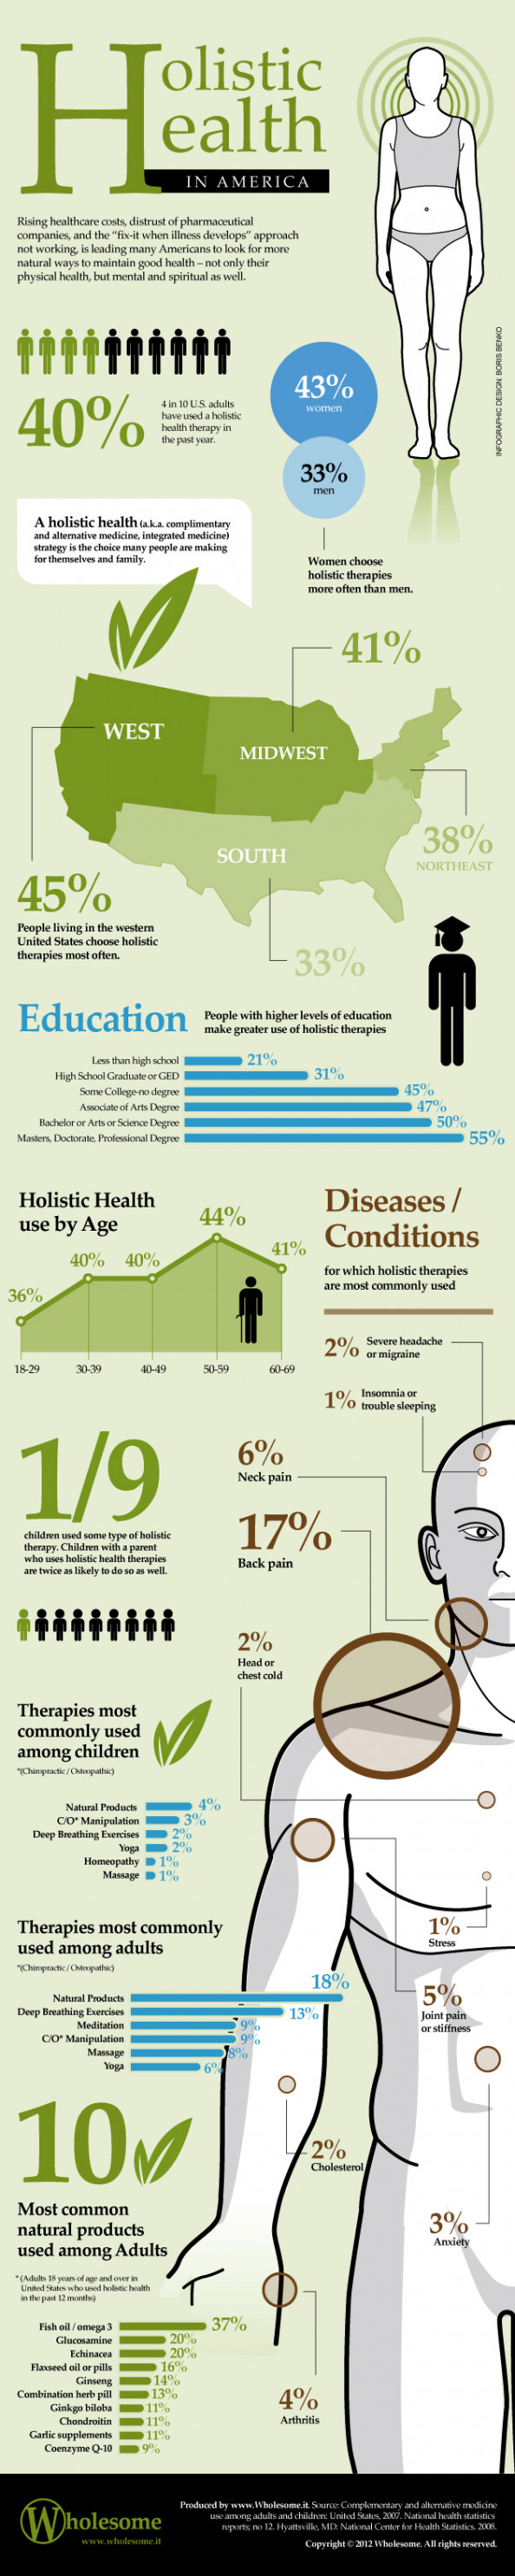 Holistic Health in America Infographic